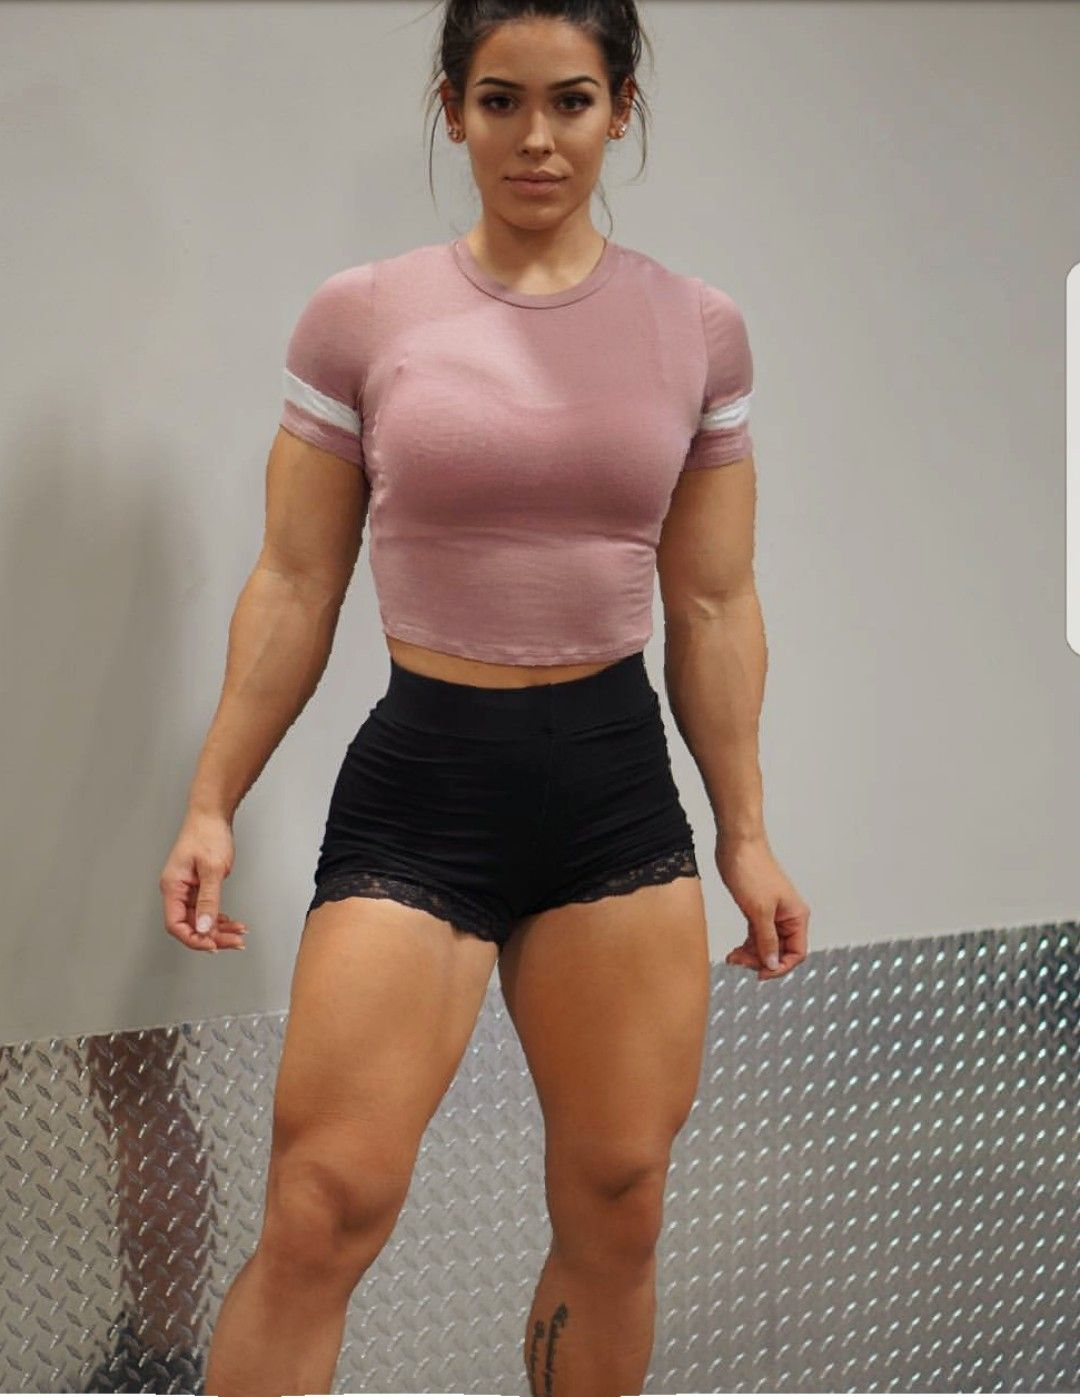 model fit Softcore domina